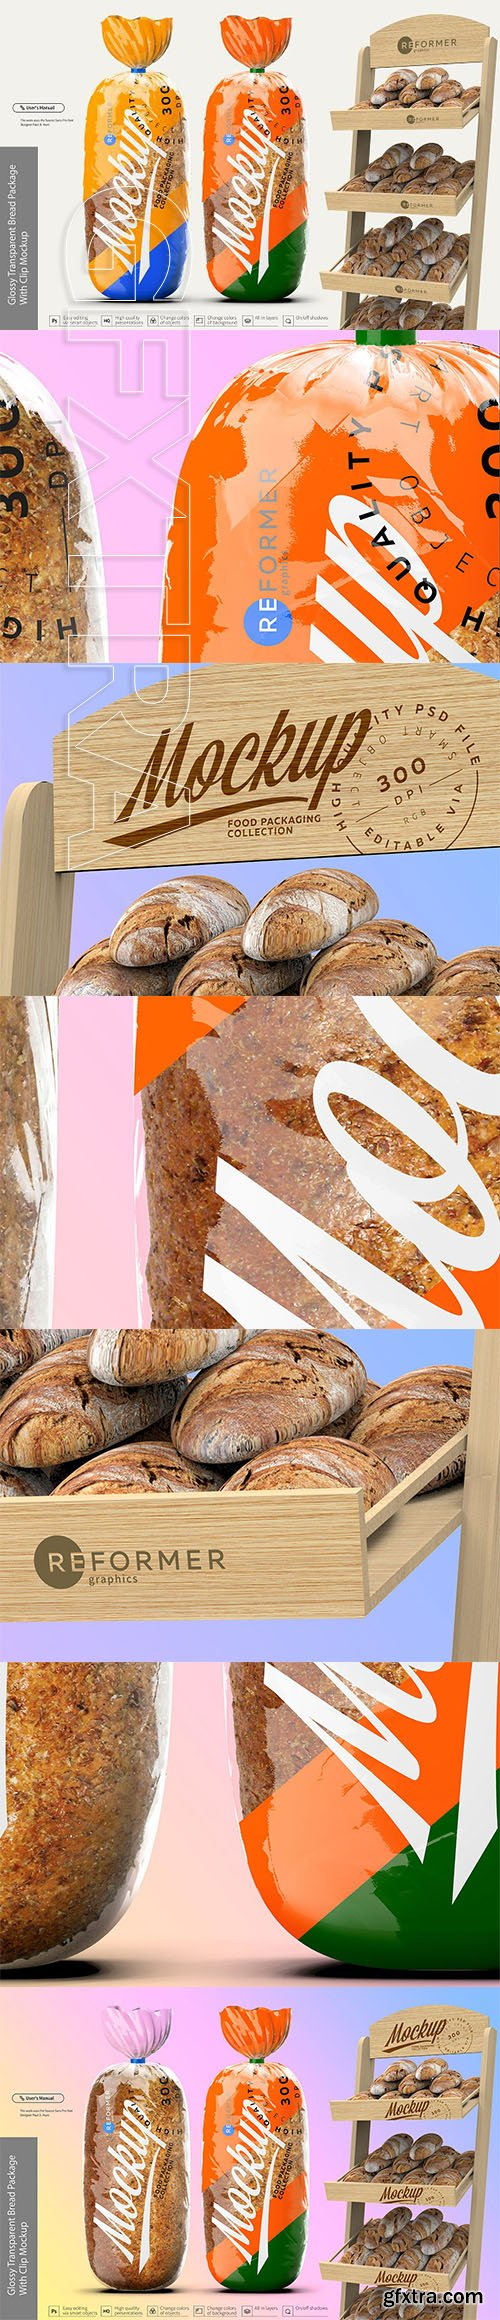 CreativeMarket - Glossy Transparent Bread Package 2834694